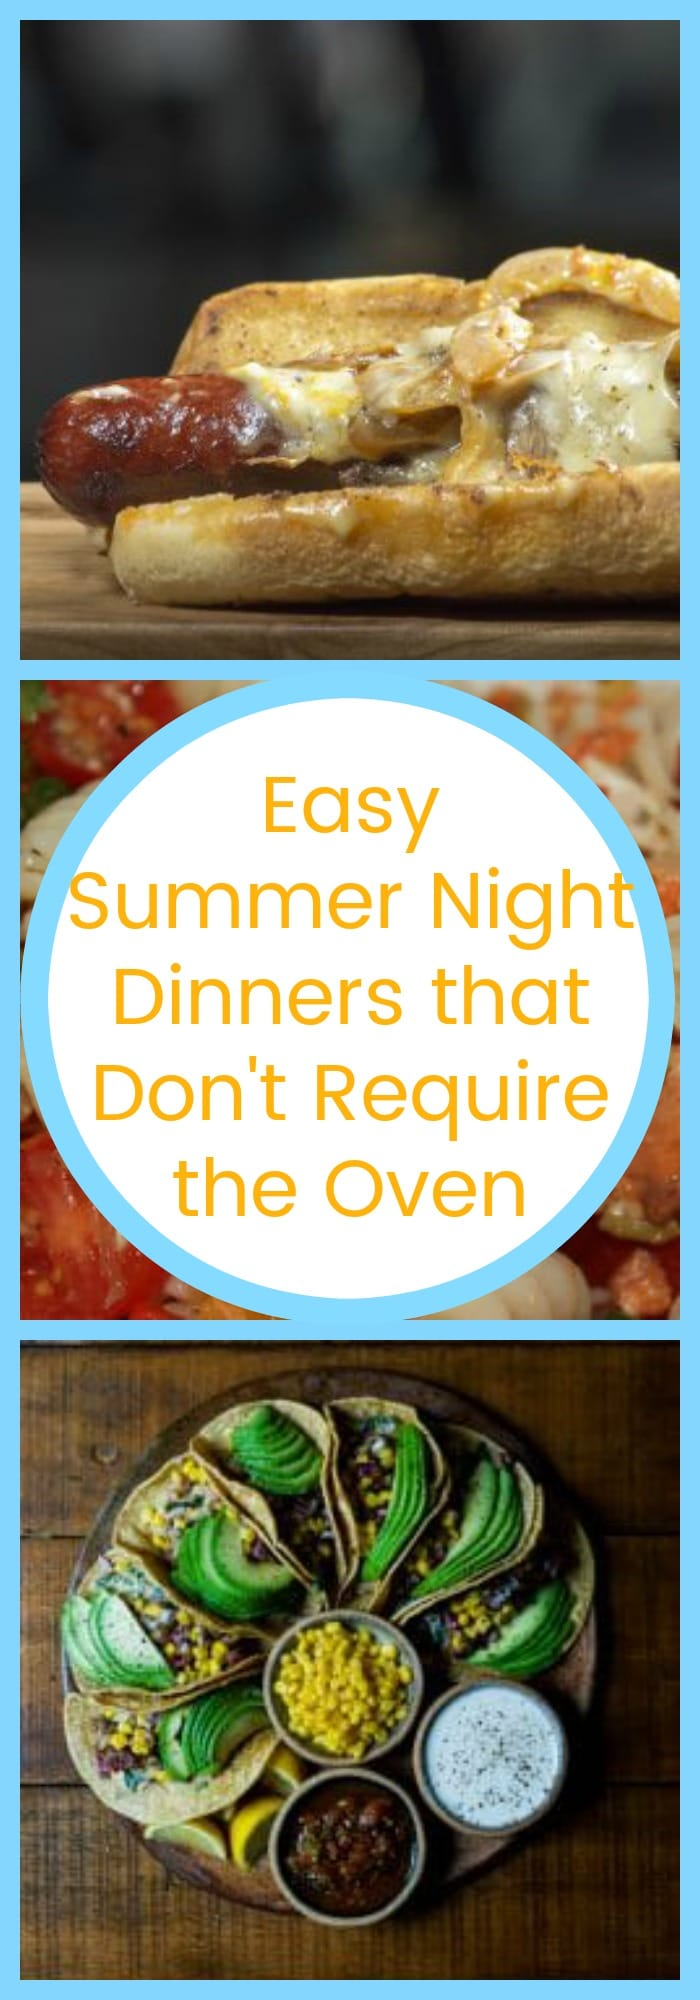 Food--Easy Summer Night Dinners that Don't Require the Oven--The Organized Mom